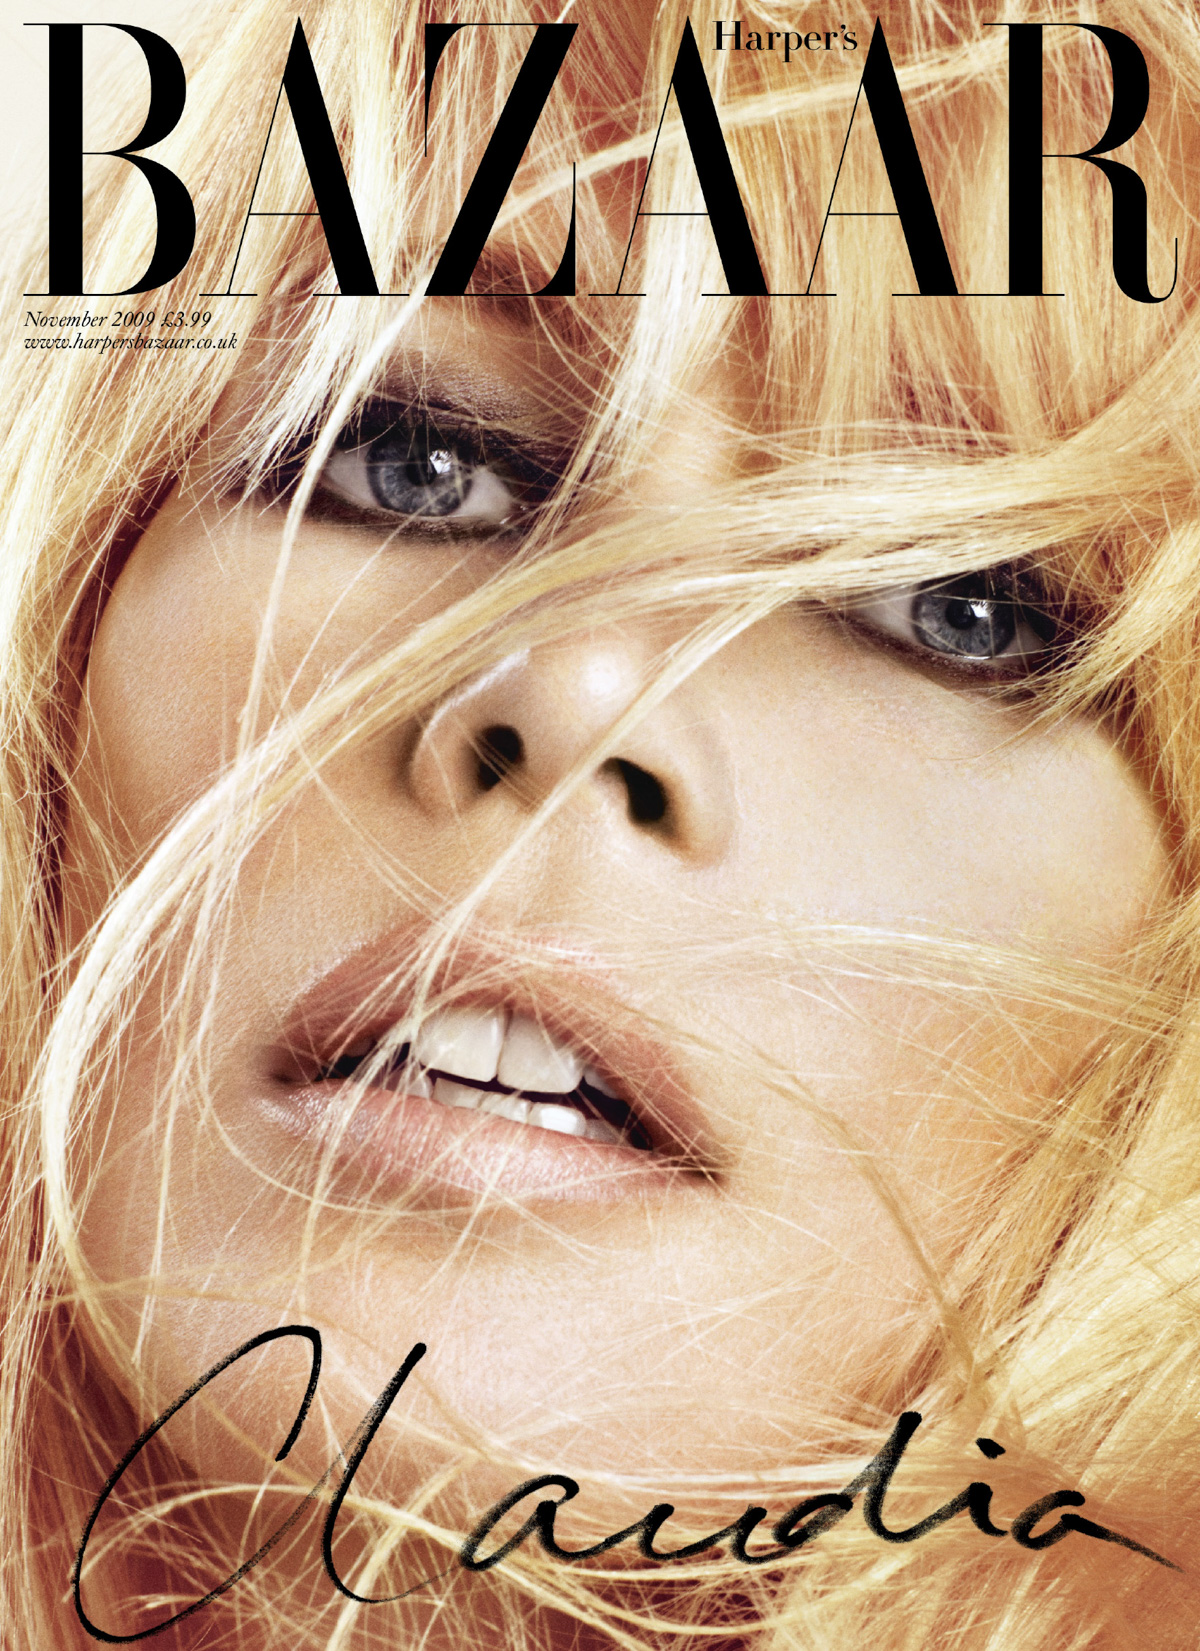 house-of-usher-harpers-bazaar-magazine-10